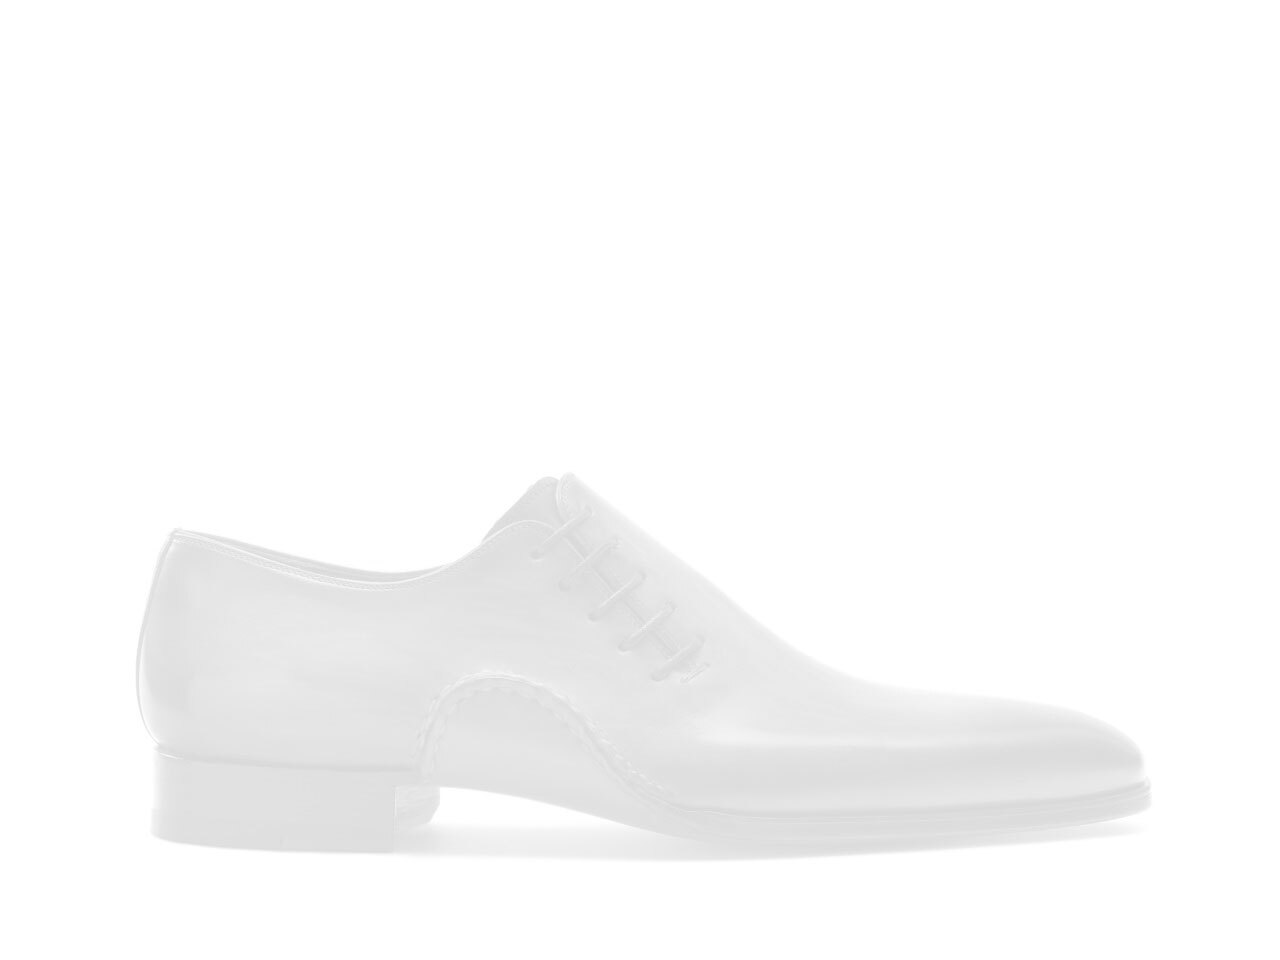 Side view of the Magnanni Tomares Grey Men's Sneakers